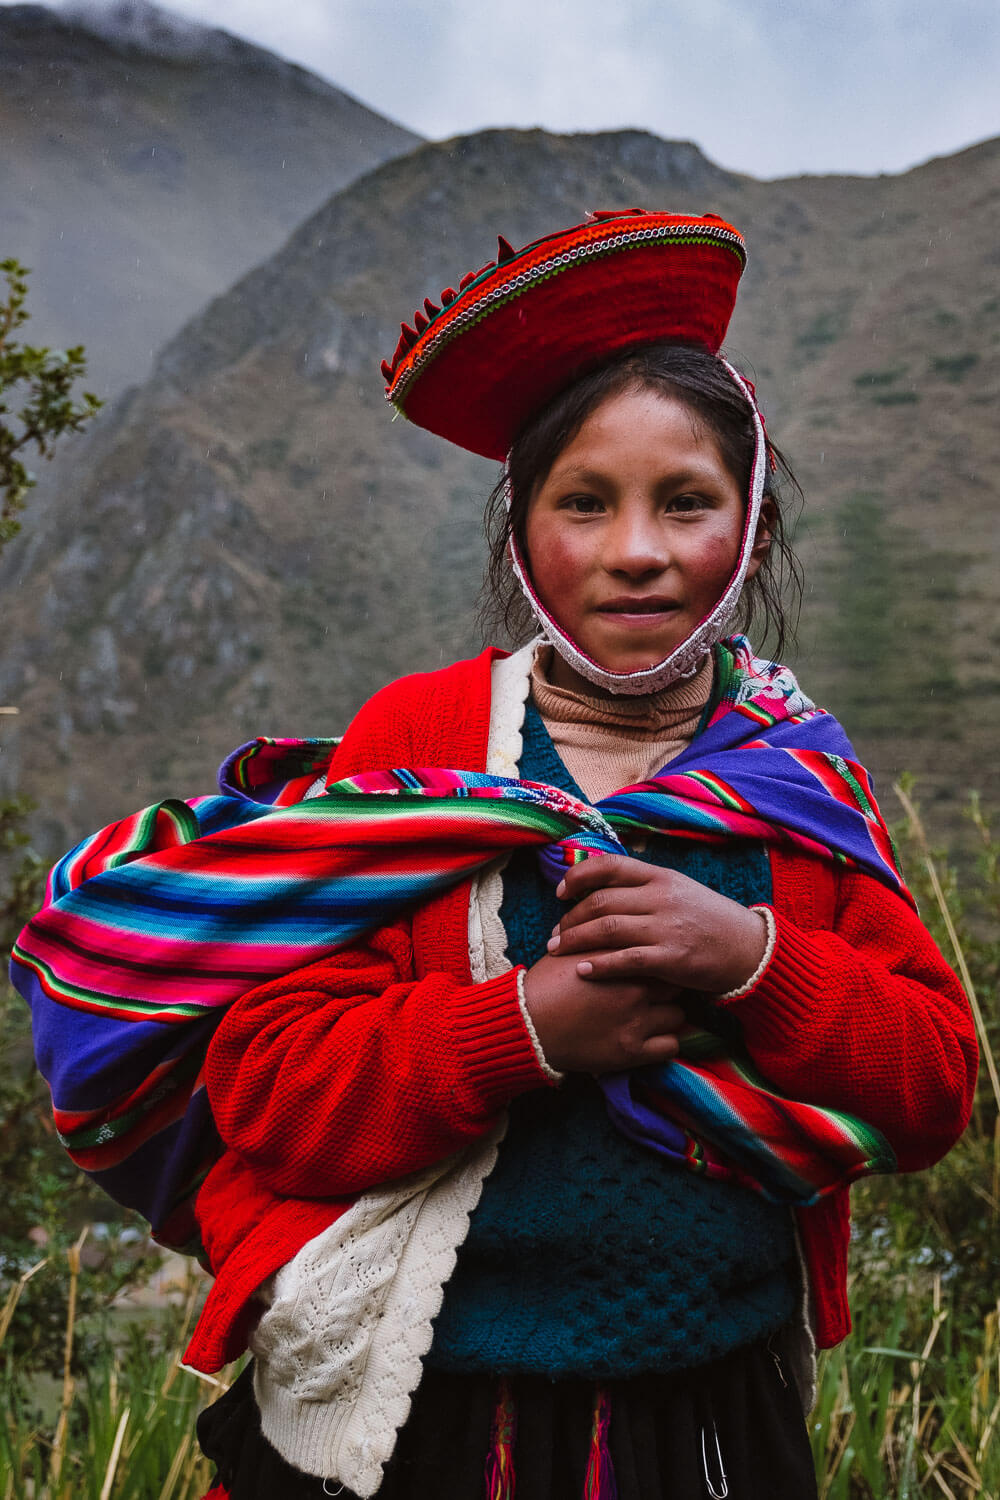 """A little girl from Patacancha in The Sacred Valley, Peru. Travel photography and guide by © Natasha Lequepeys for """"And Then I Met Yoko"""". #travelguide #fujifilm #machupicchu #ValleSagrado #travel"""